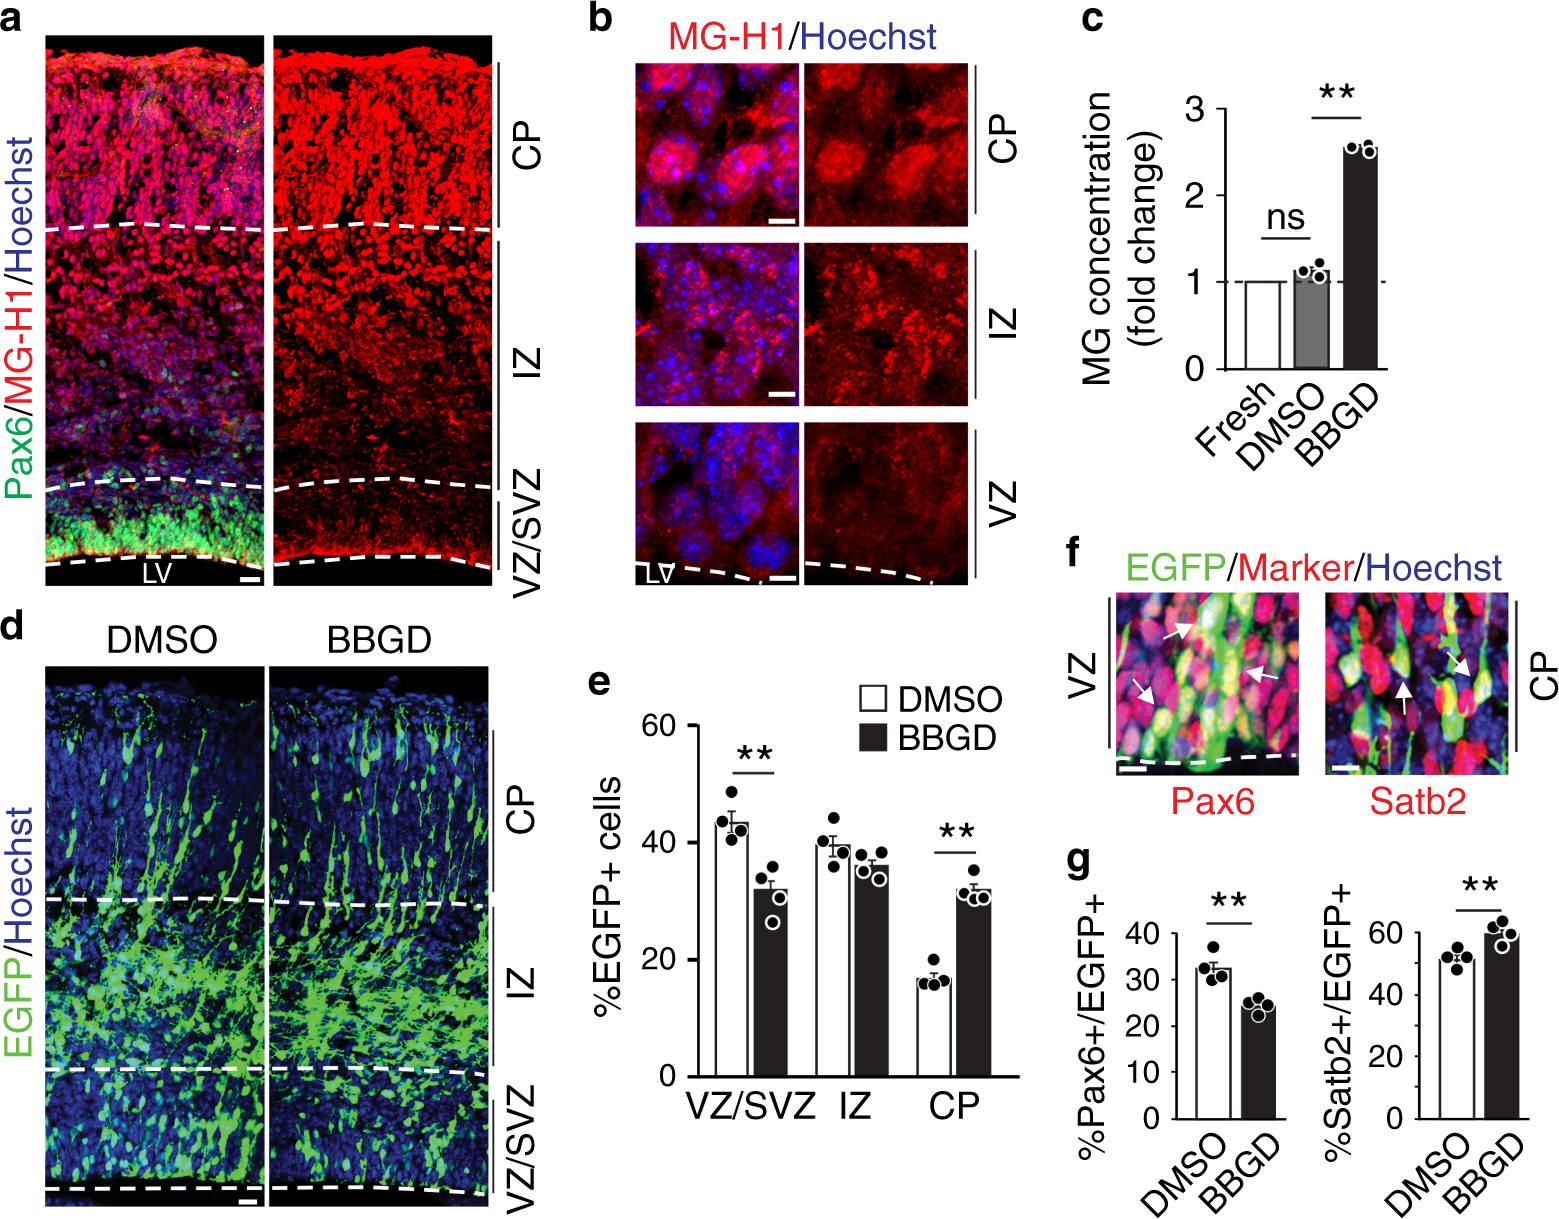 Methylglyoxal couples metabolic and translational control of Notch signalling in mammalian neural stem cells